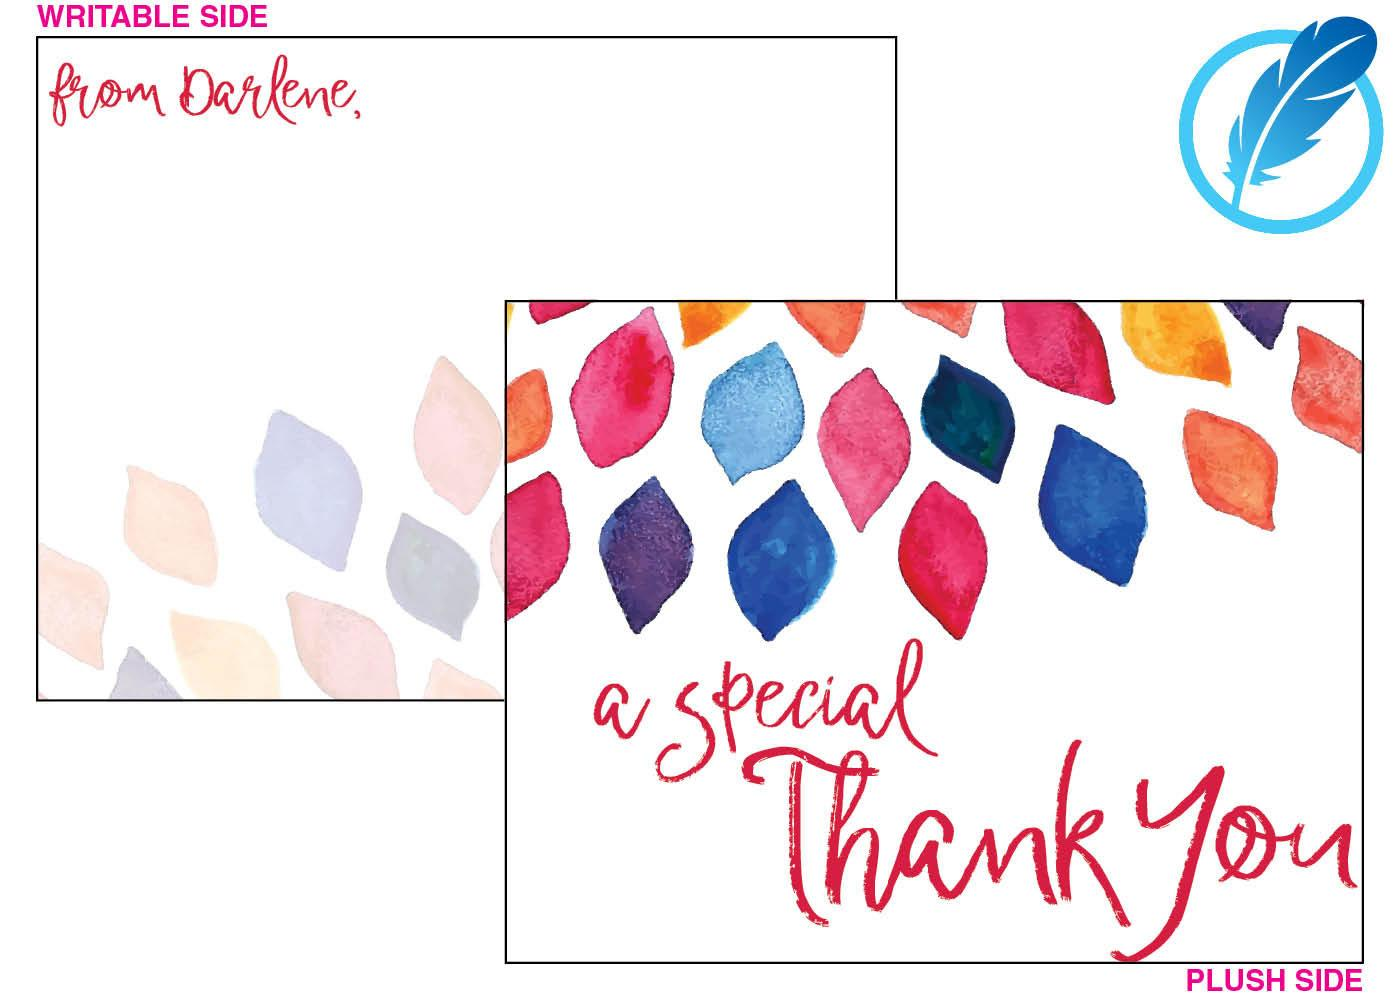 A special thank you note card